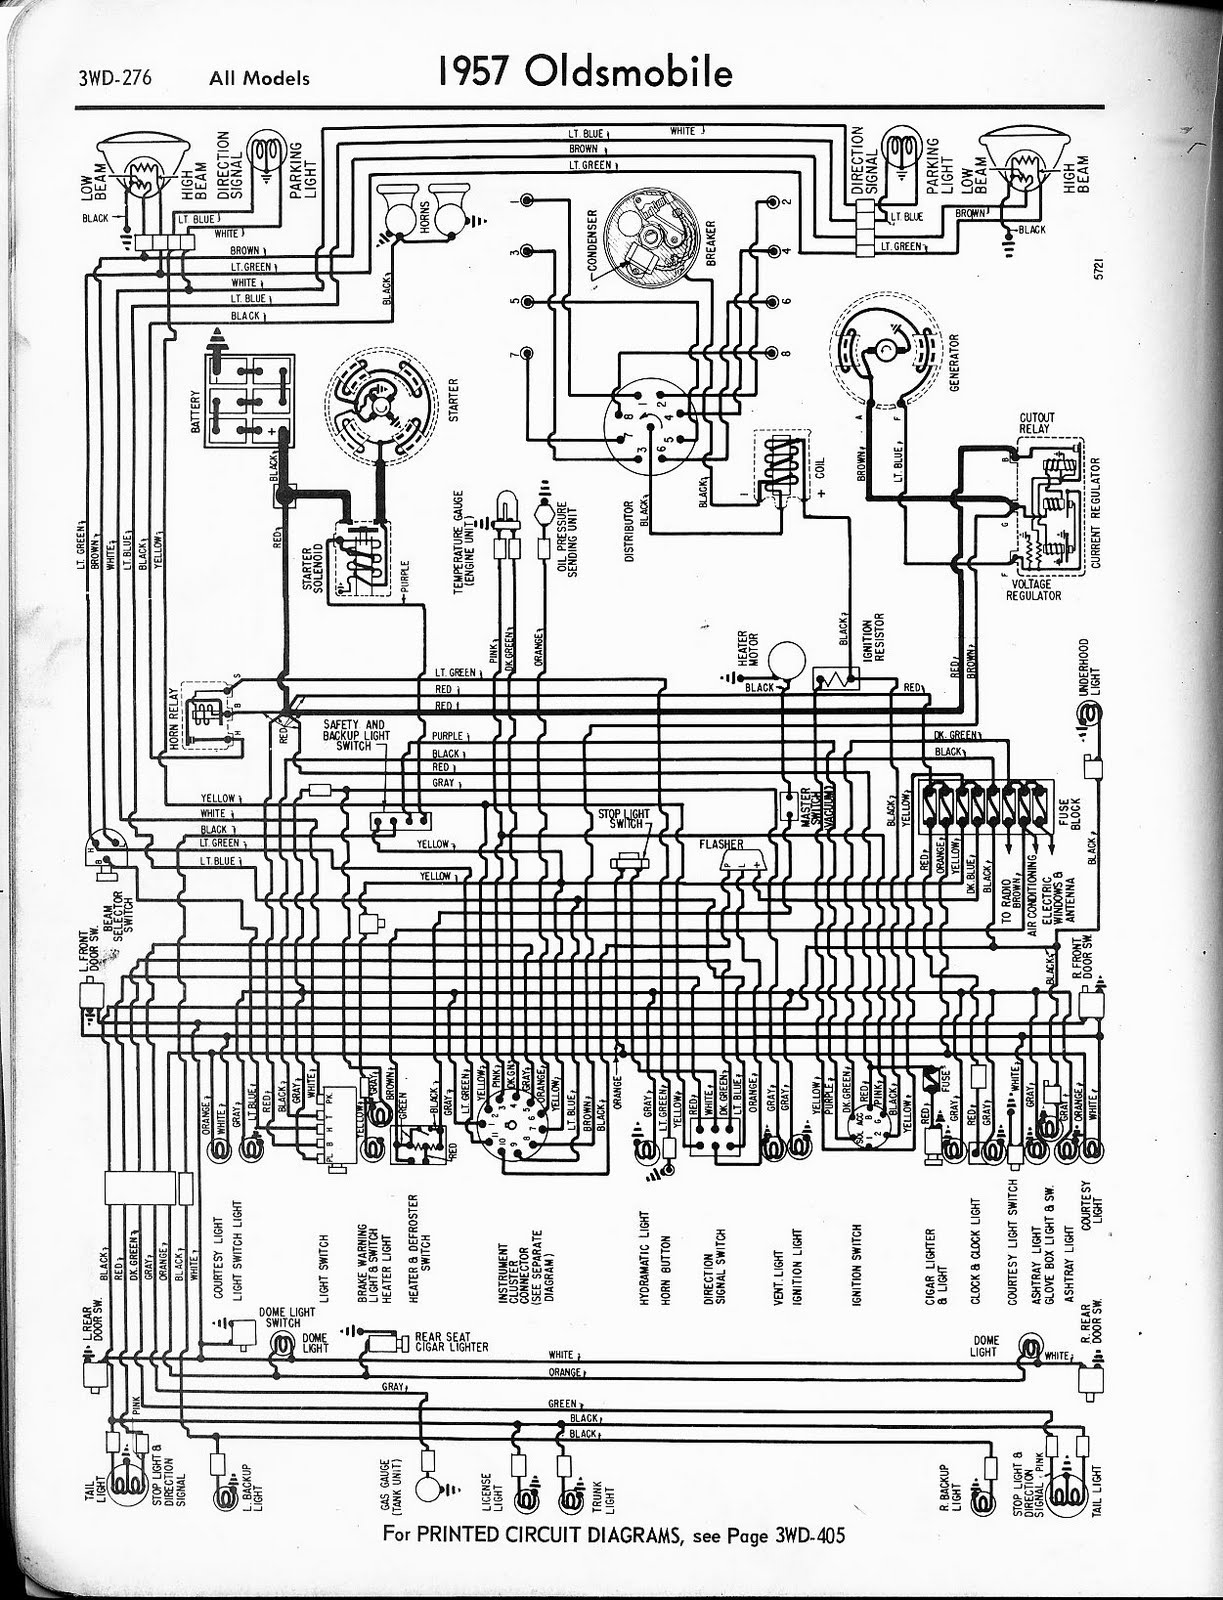 Peachy Fiat Stilo Wiring Diagram Wiring Library Wiring Cloud Hisonuggs Outletorg